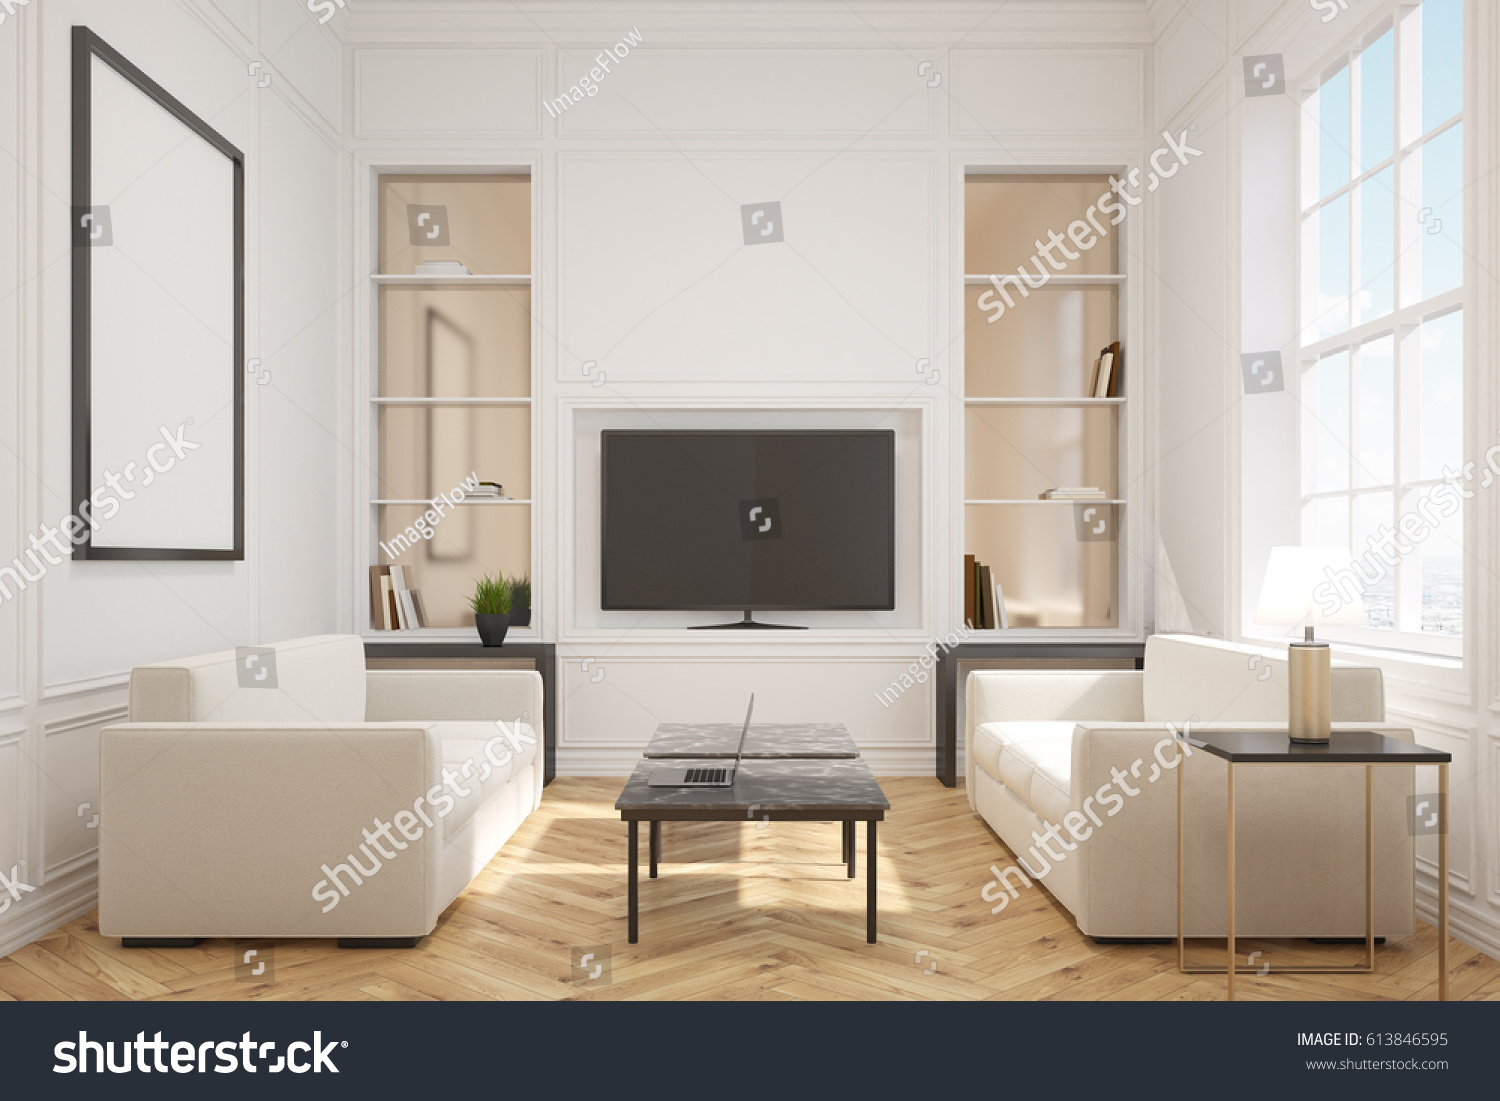 Front view of a living room interior with a tv set with wide screen hanging on